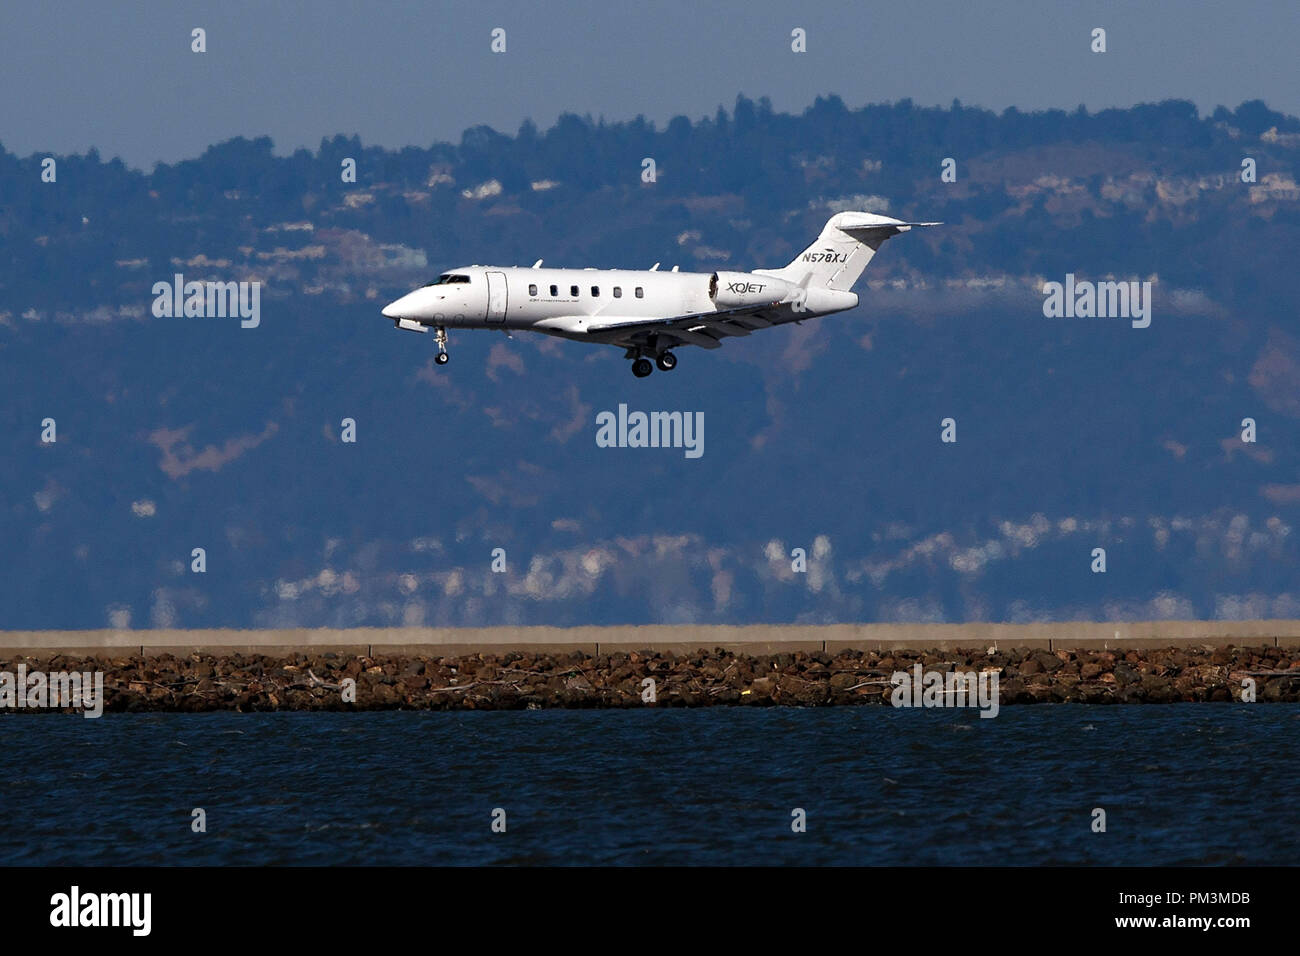 Bombardier Challenger 300 (N578XJ) operated by Xojet landing at San Francisco International Airport (KSFO), San Francisco, California, United States of America - Stock Image